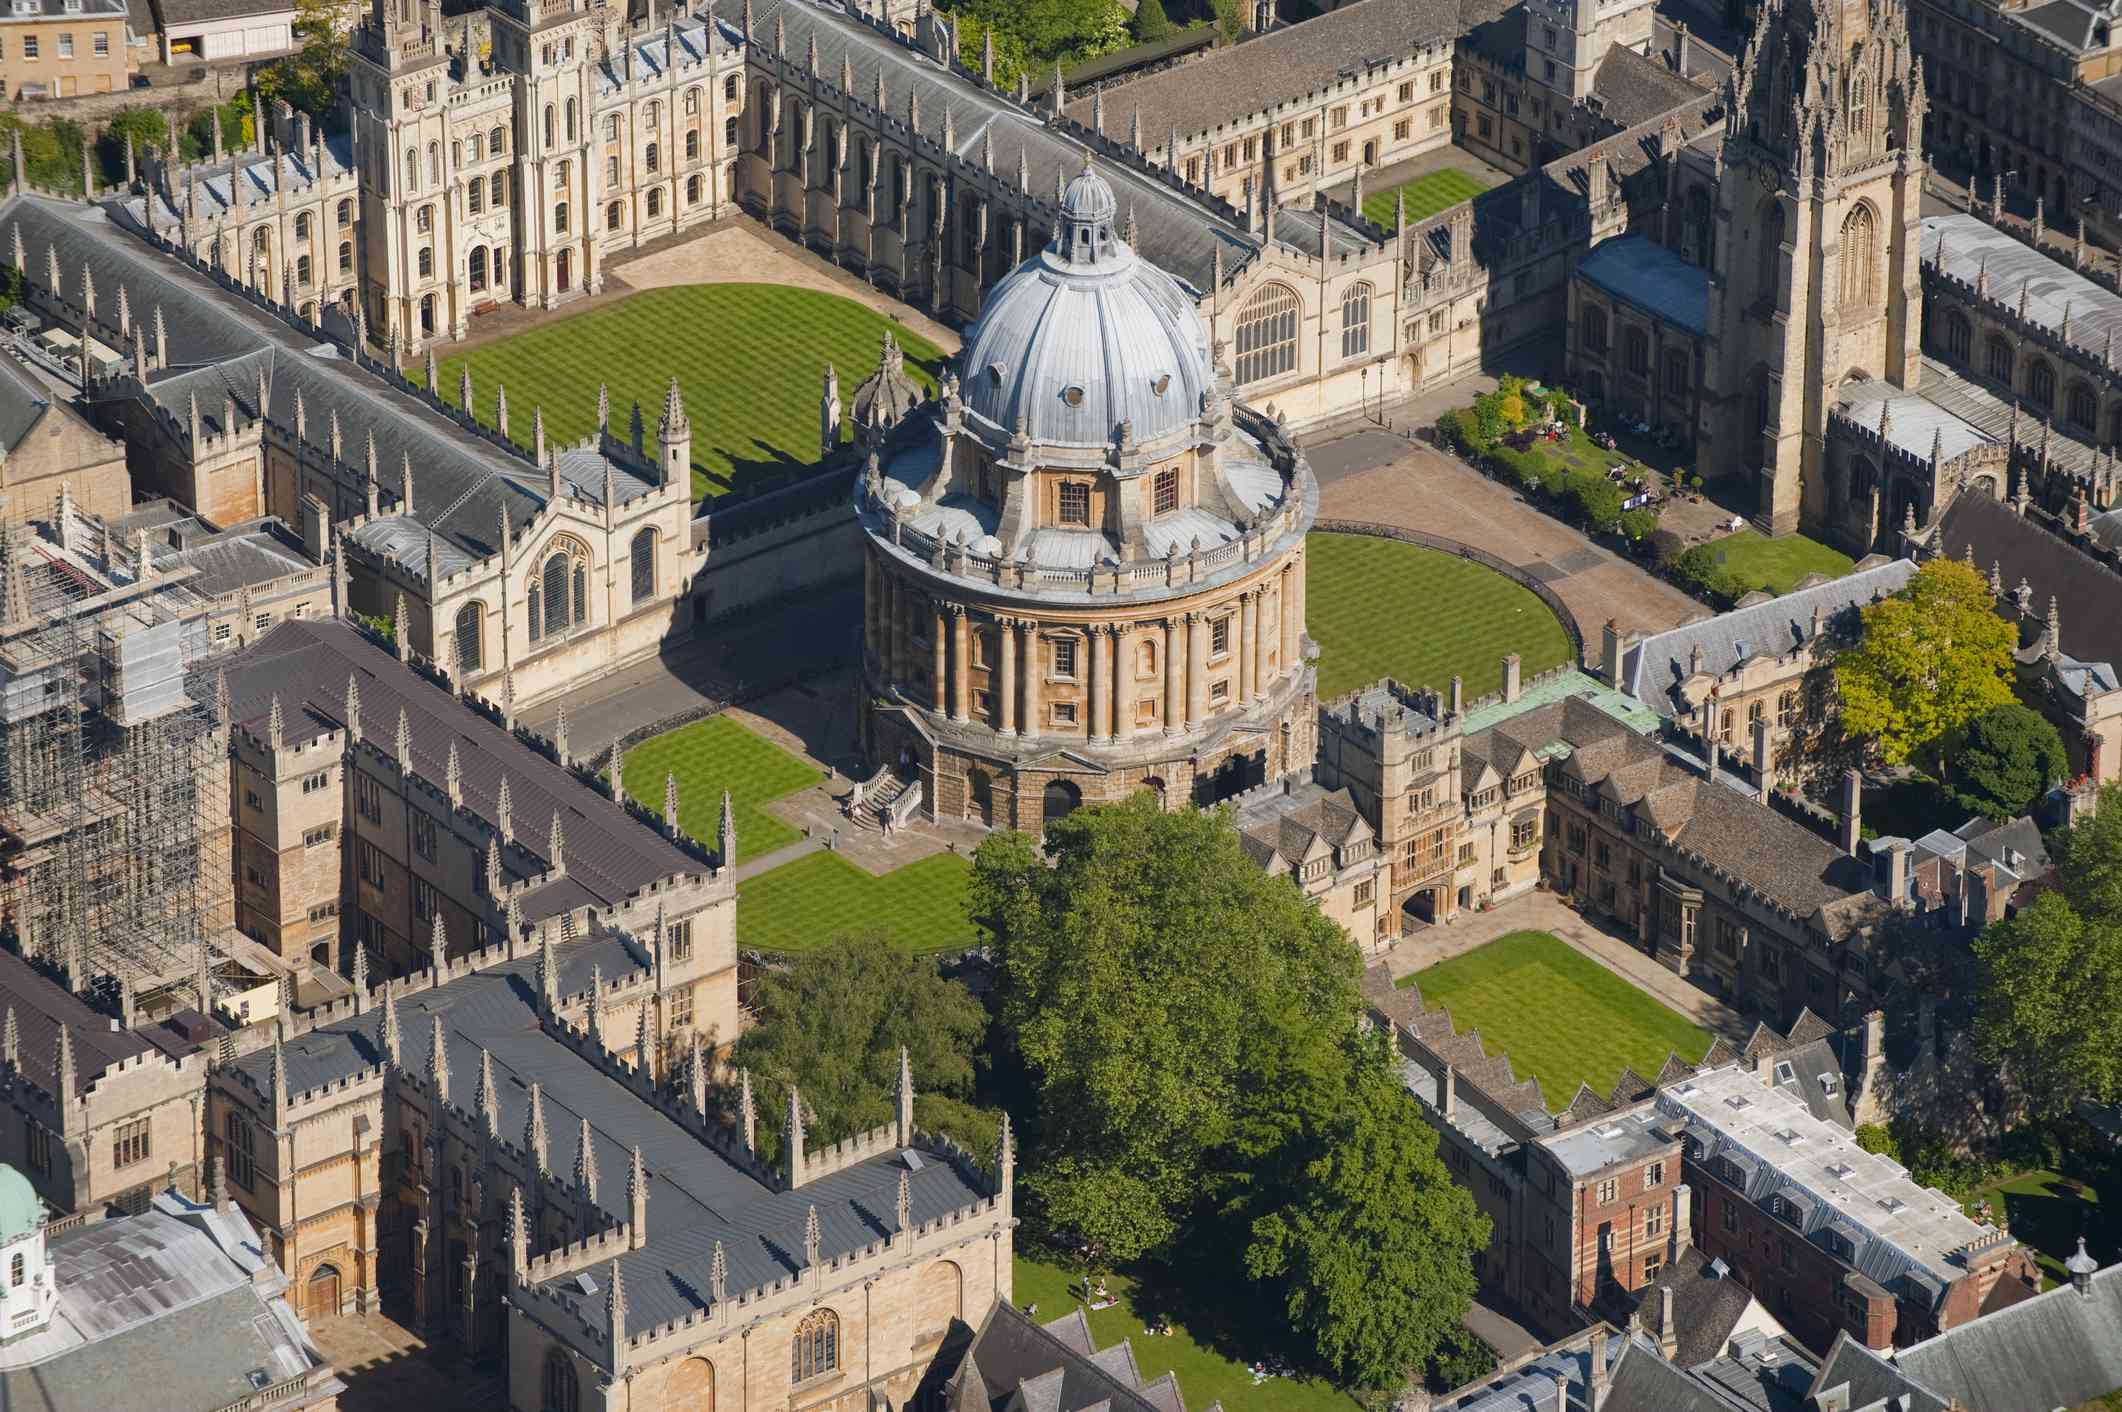 Aerial View of Radcliffe Camera at Oxford University